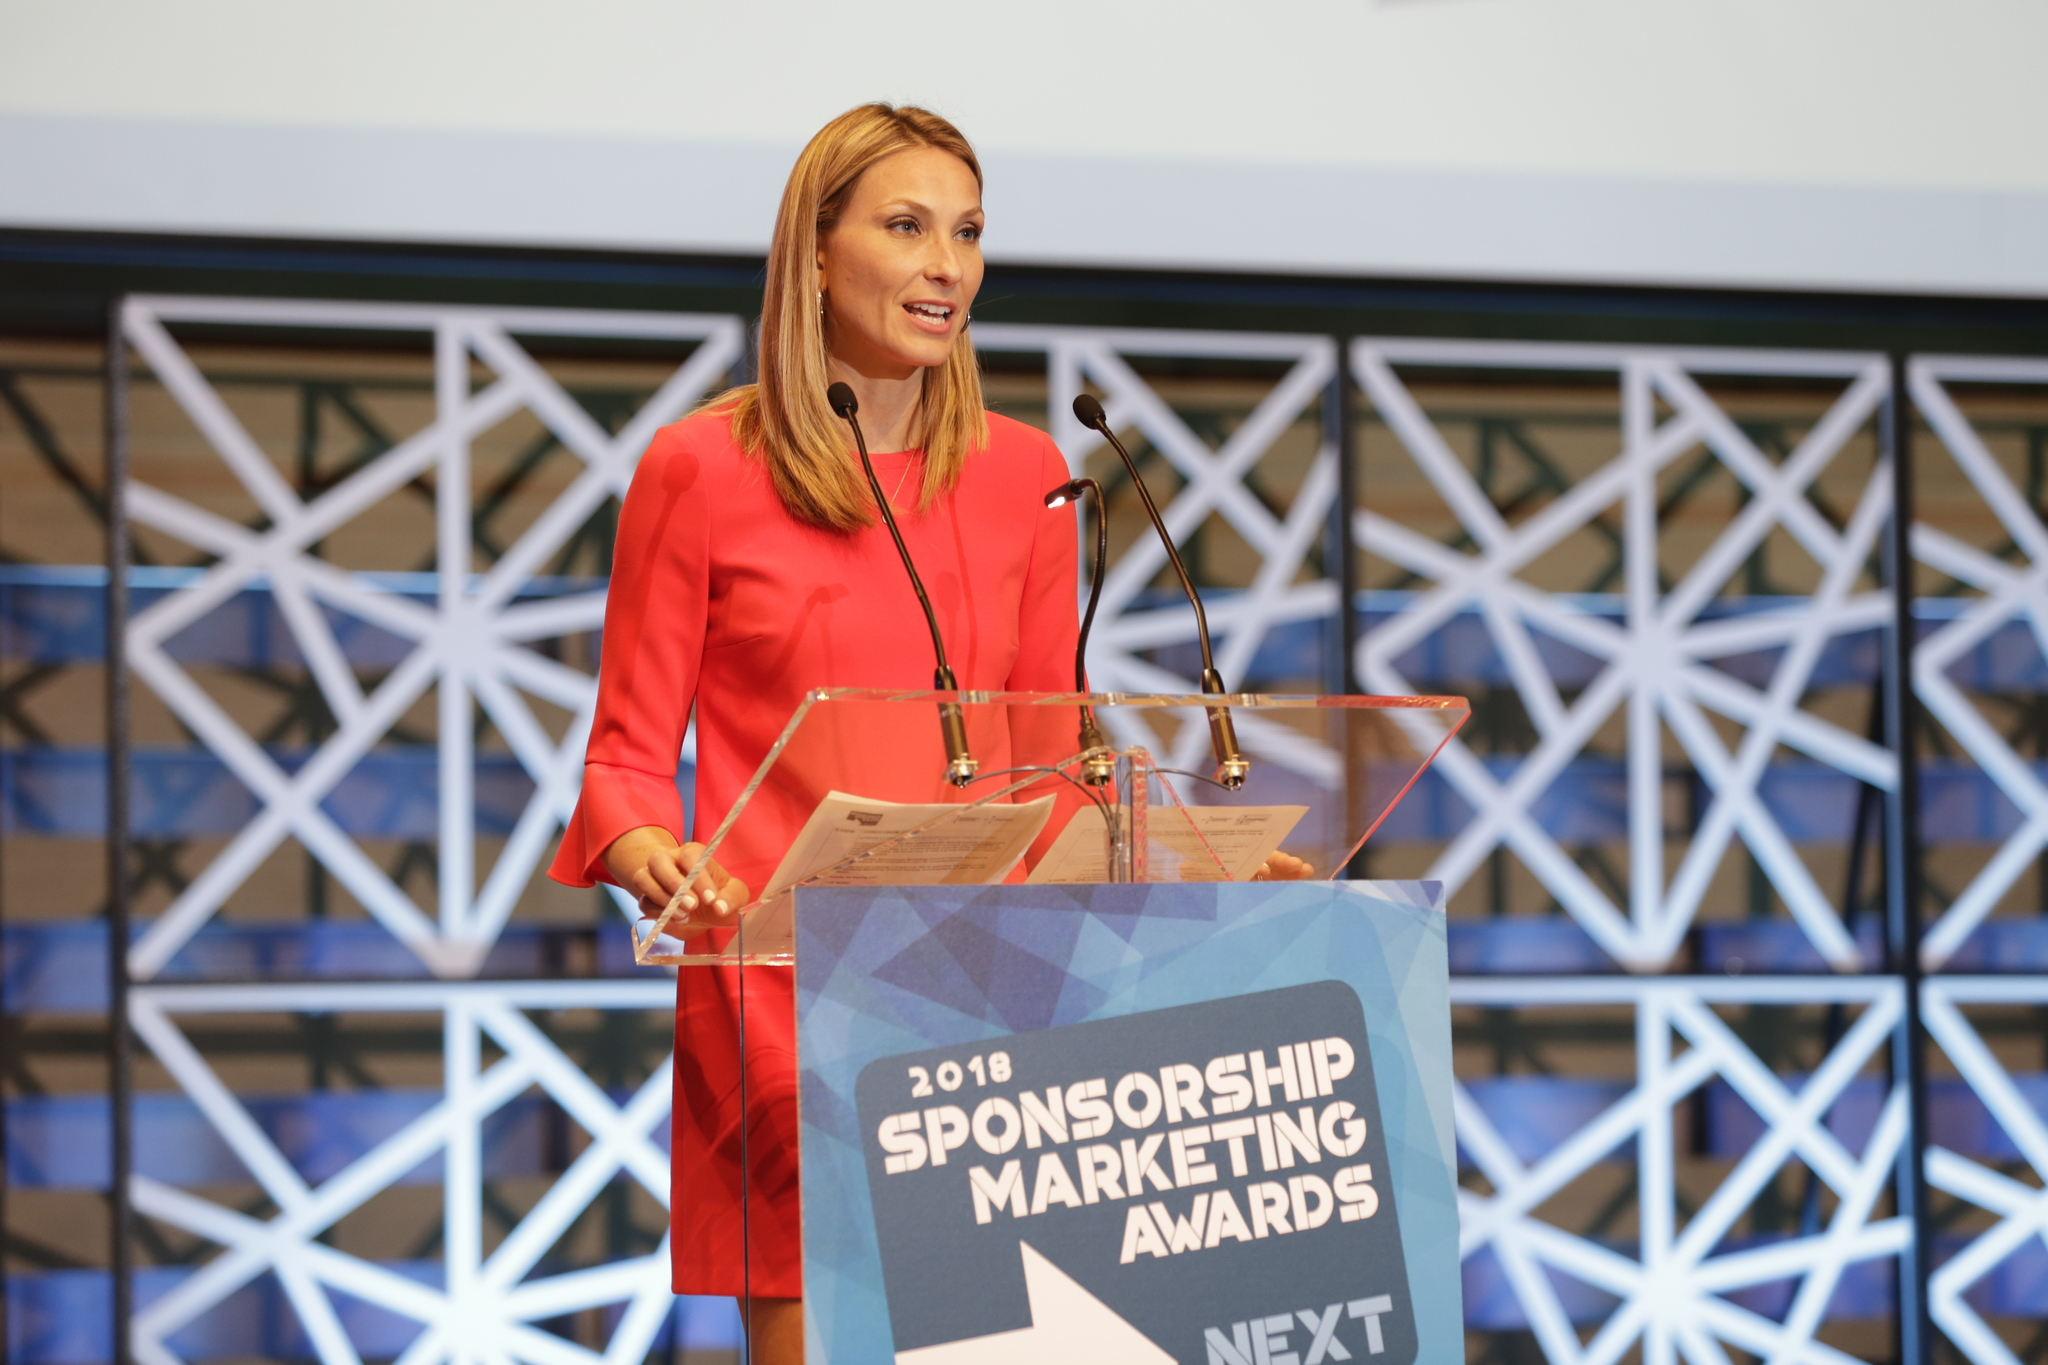 Sponsorship Marketing Awards